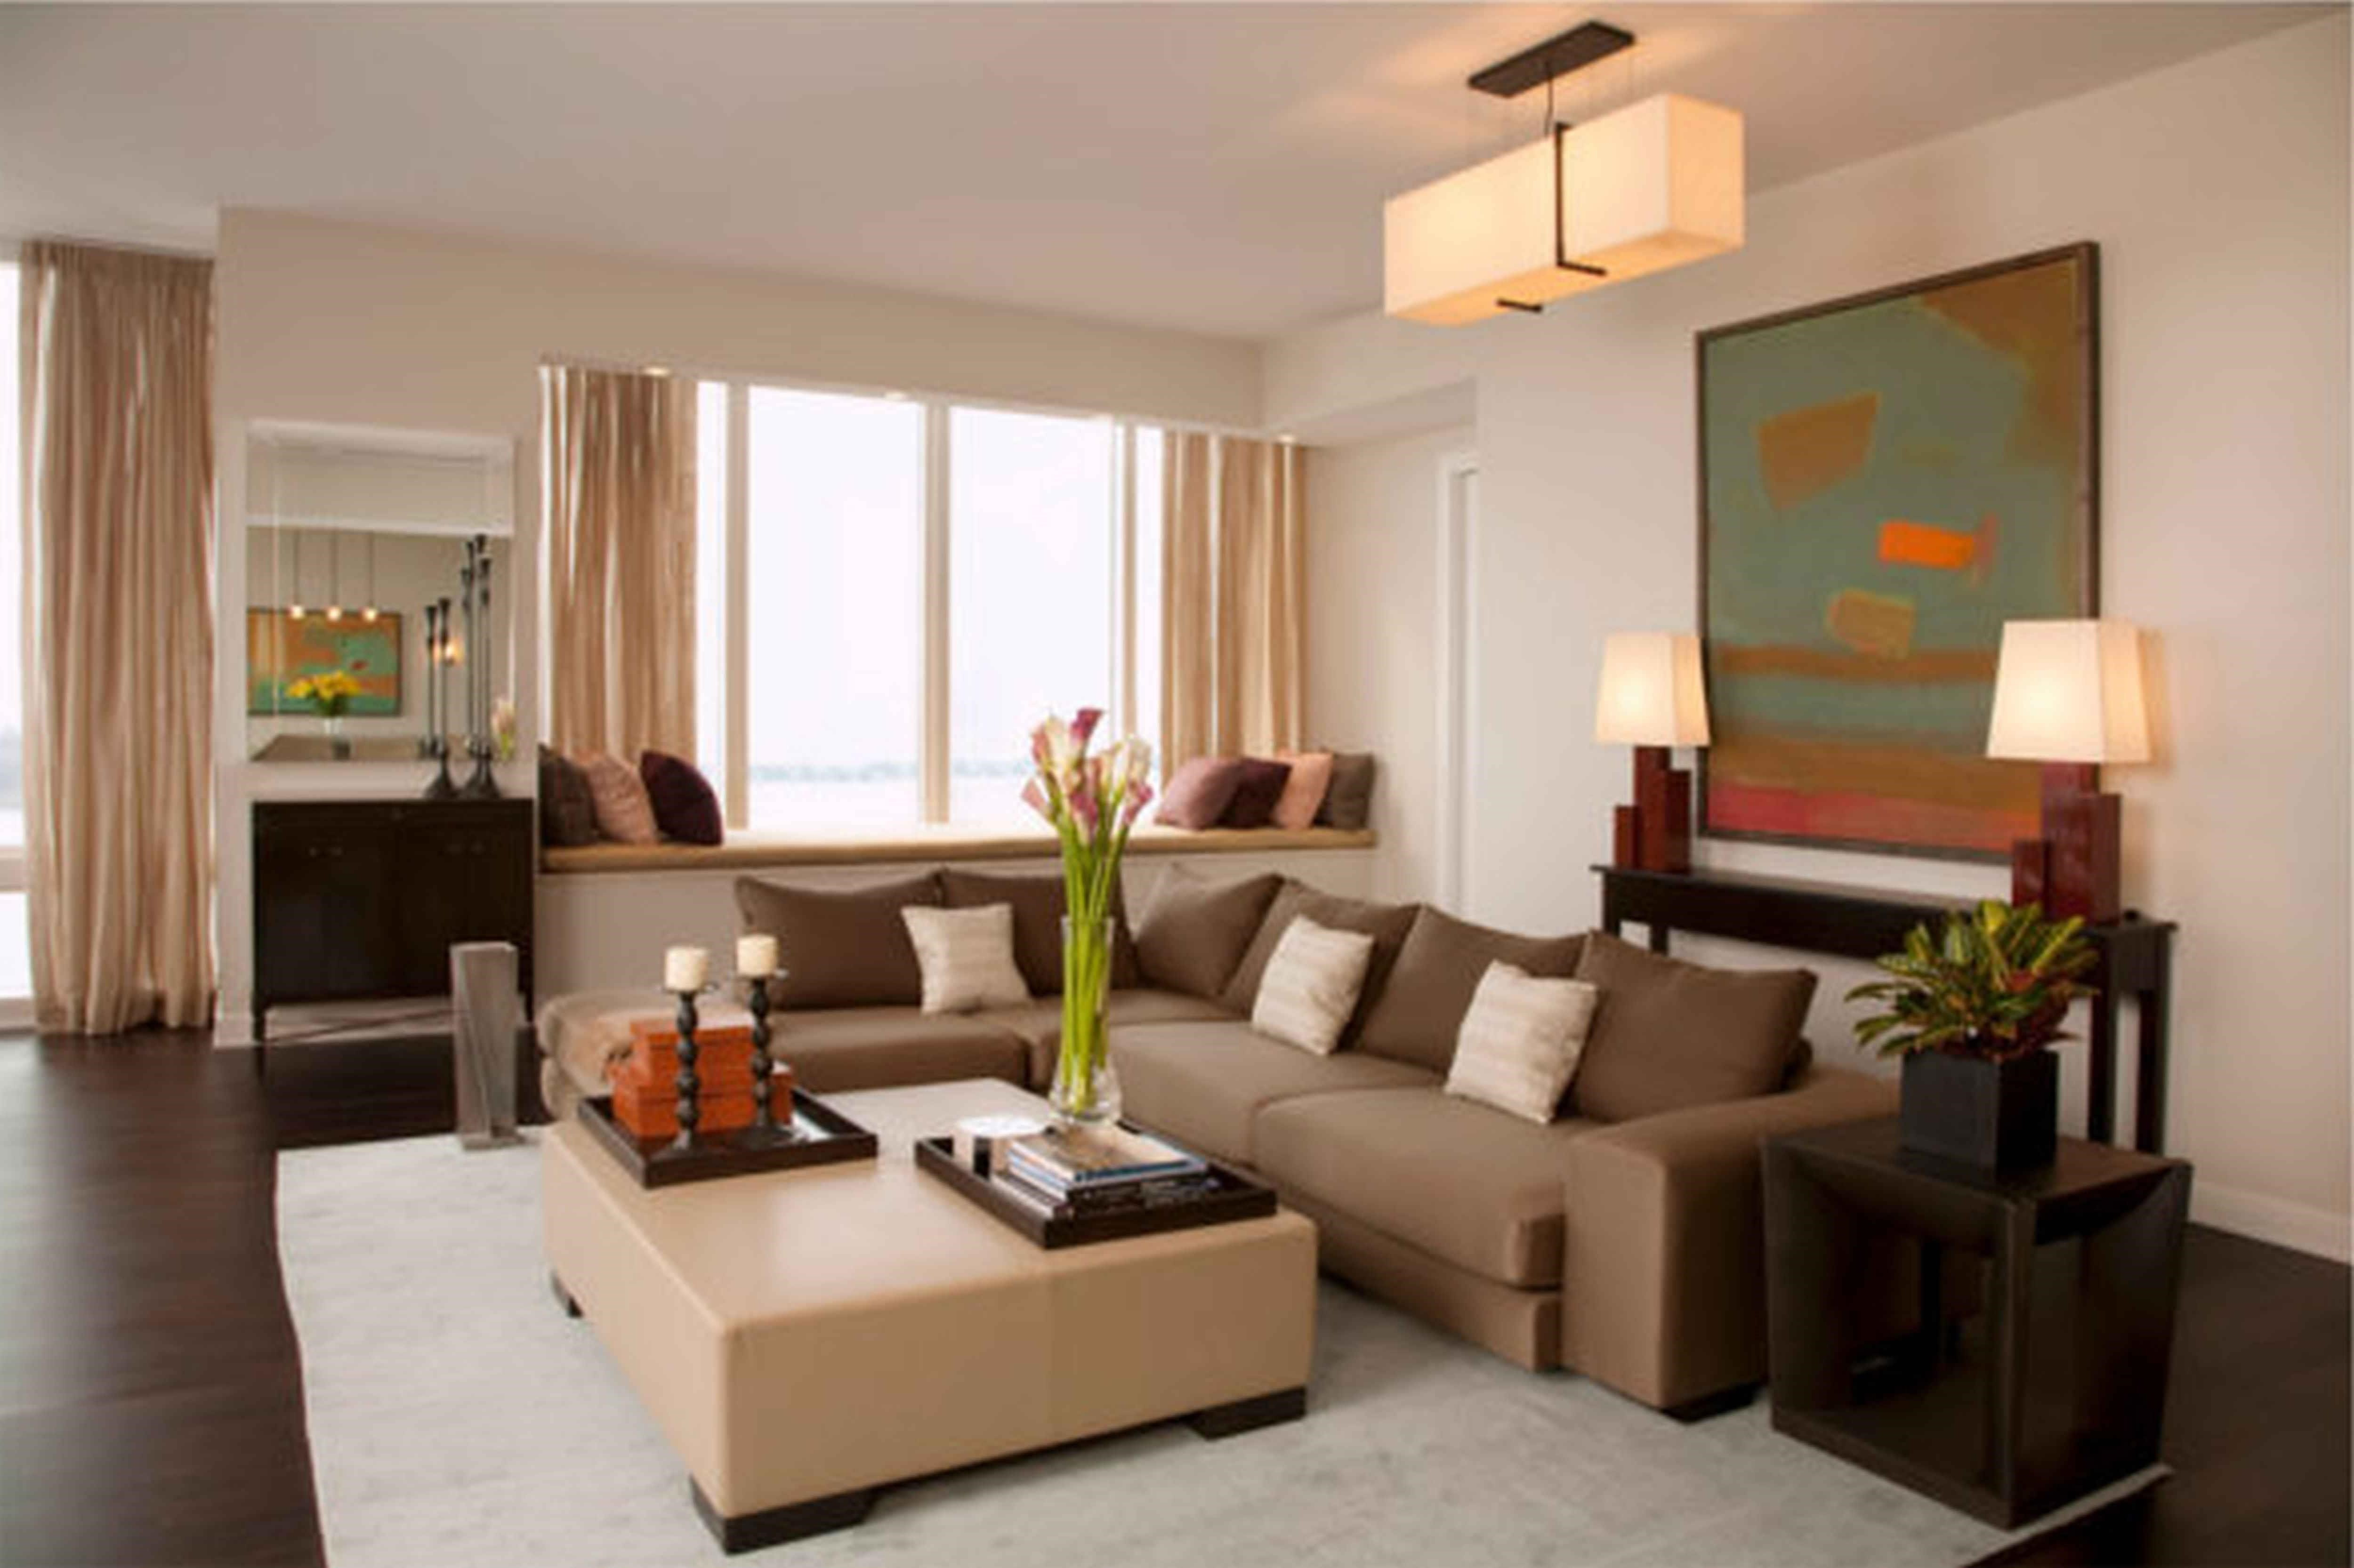 Apartment Living Room Arrangement Ideas Best Of Interior Living Room Layout Ideas to Helps the Space Feel More Spacious and Unique — Tenchicha